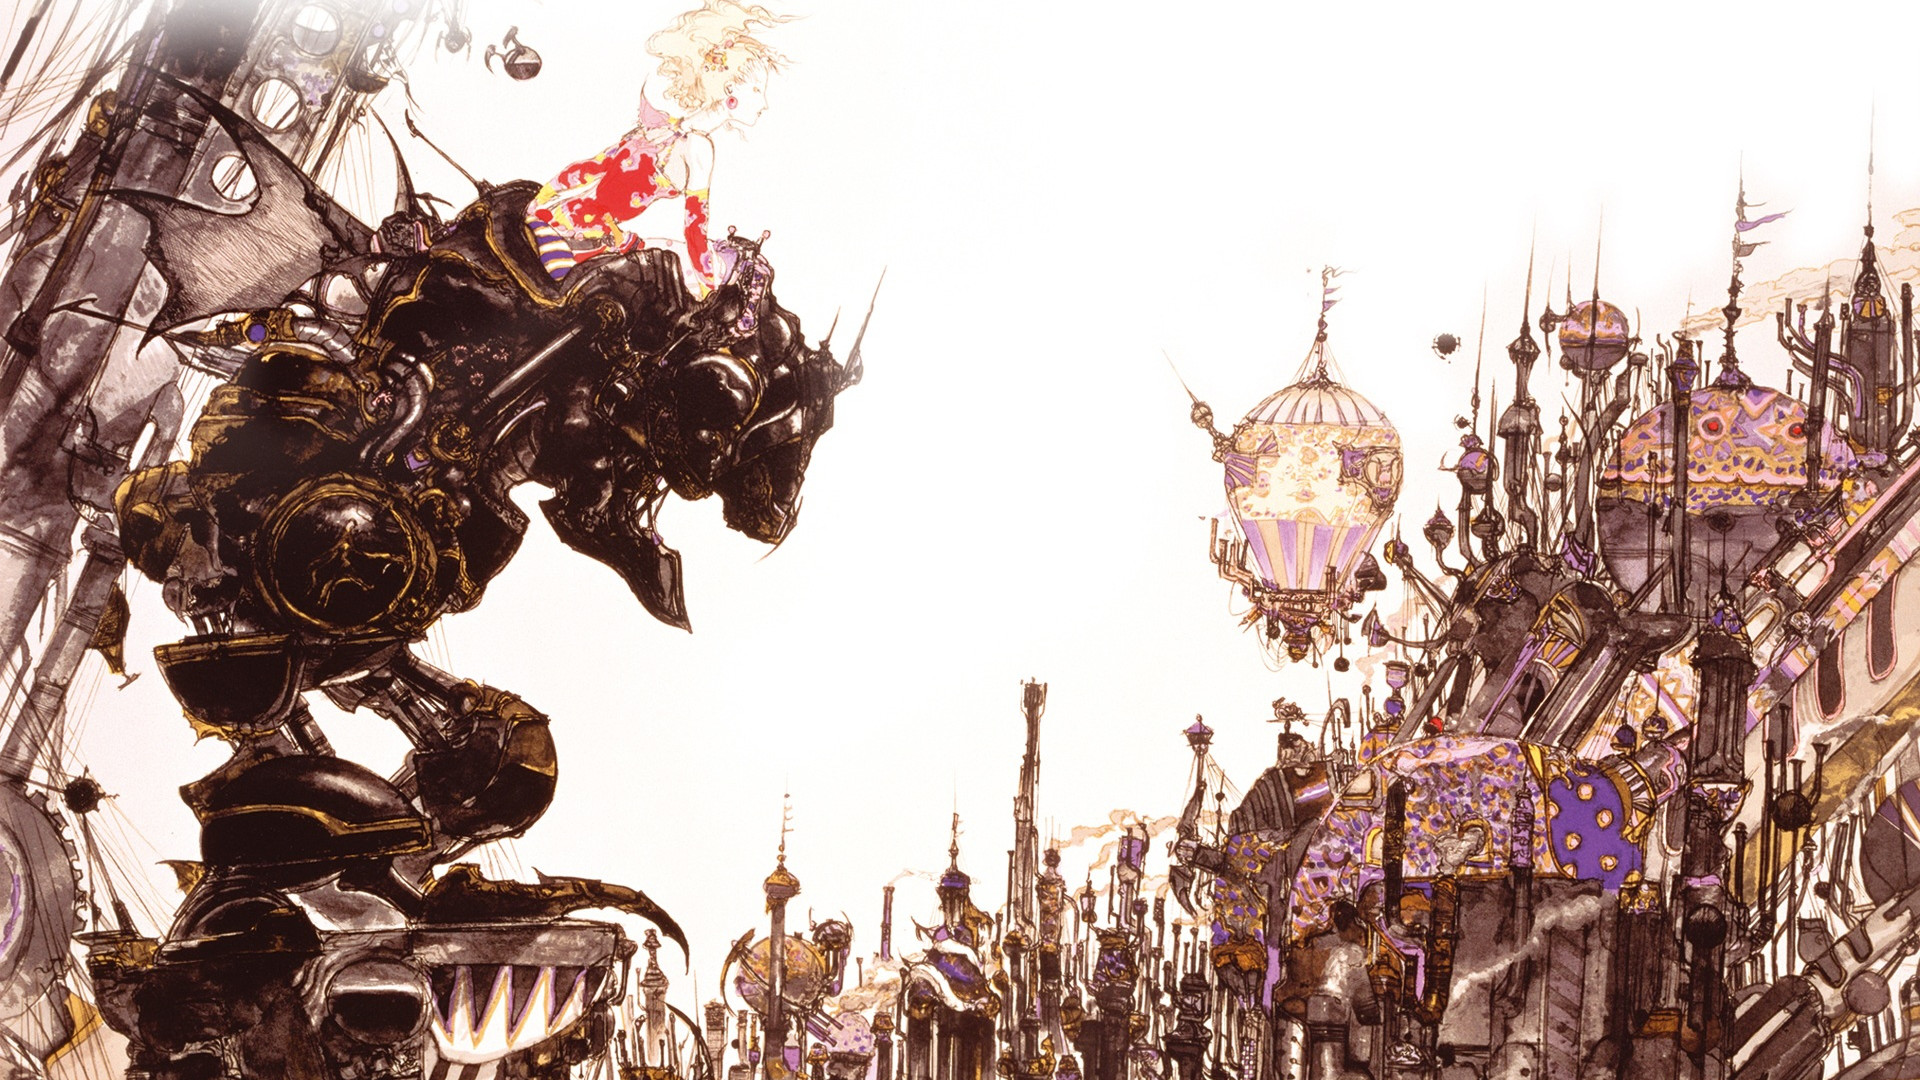 1920x1080 Final Fantasy III HD Wallpaper | Hintergrund |  | ID:520974 -  Wallpaper Abyss